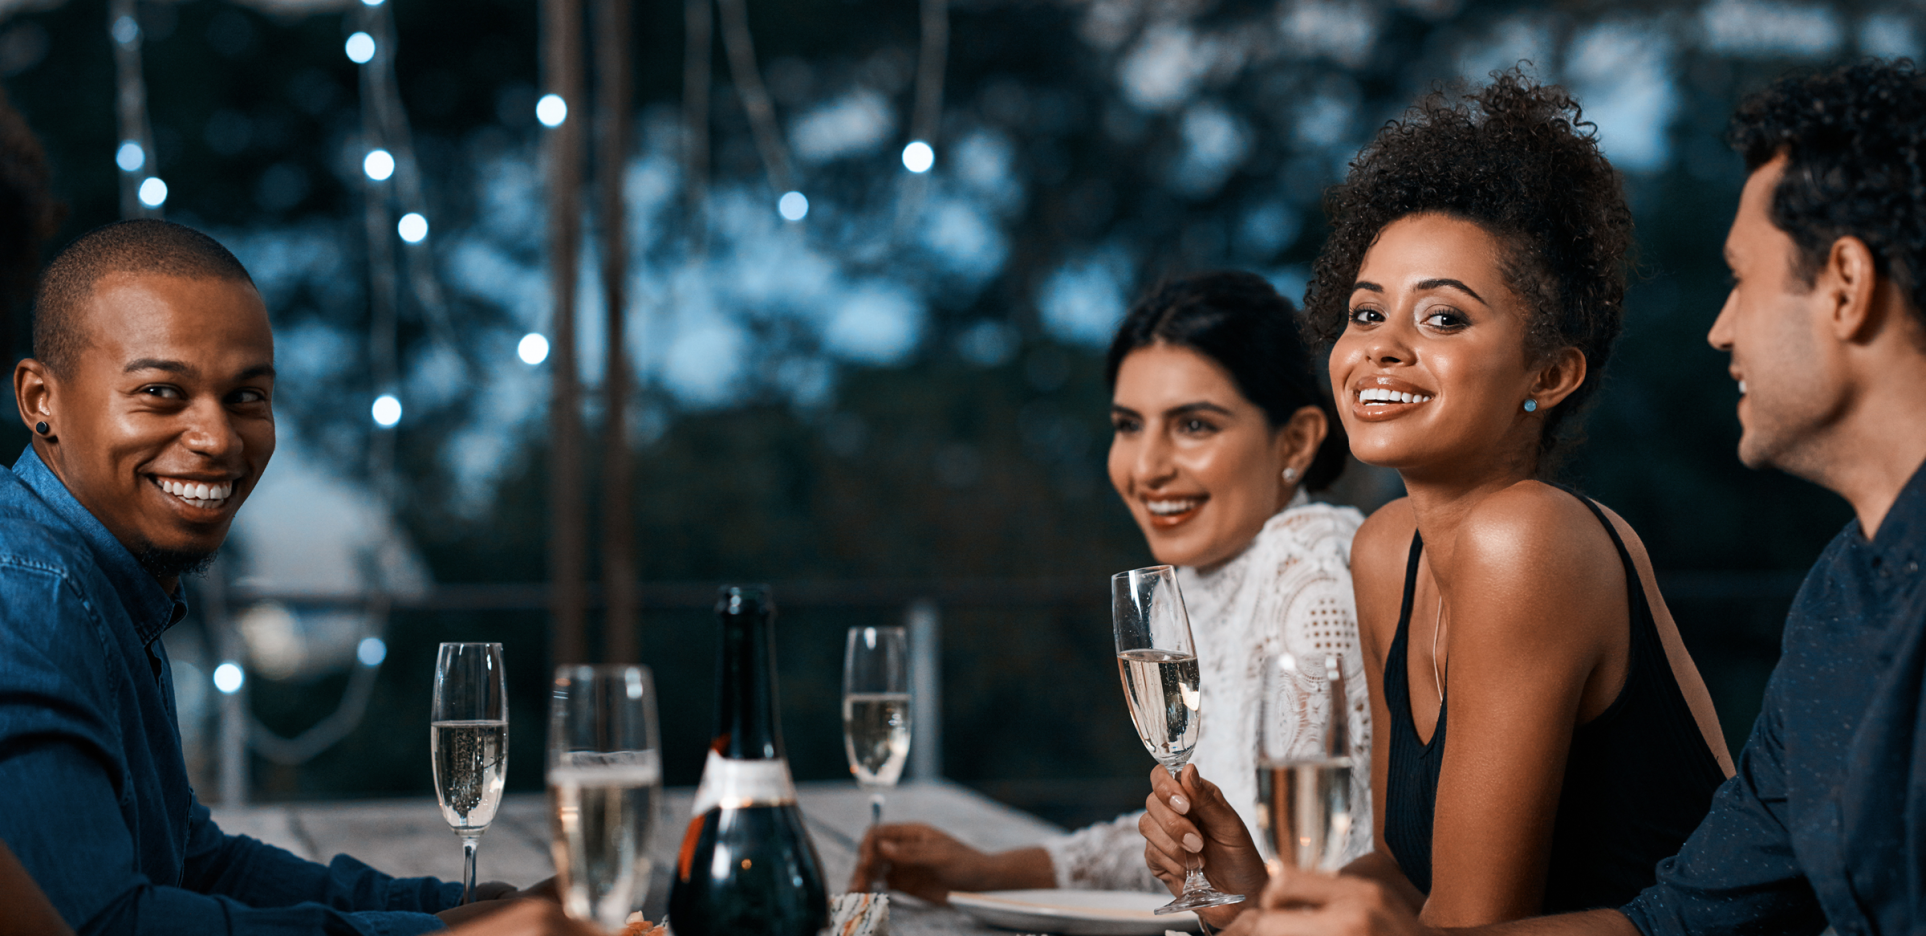 couples or group of friends celebrating with champagne at dinner